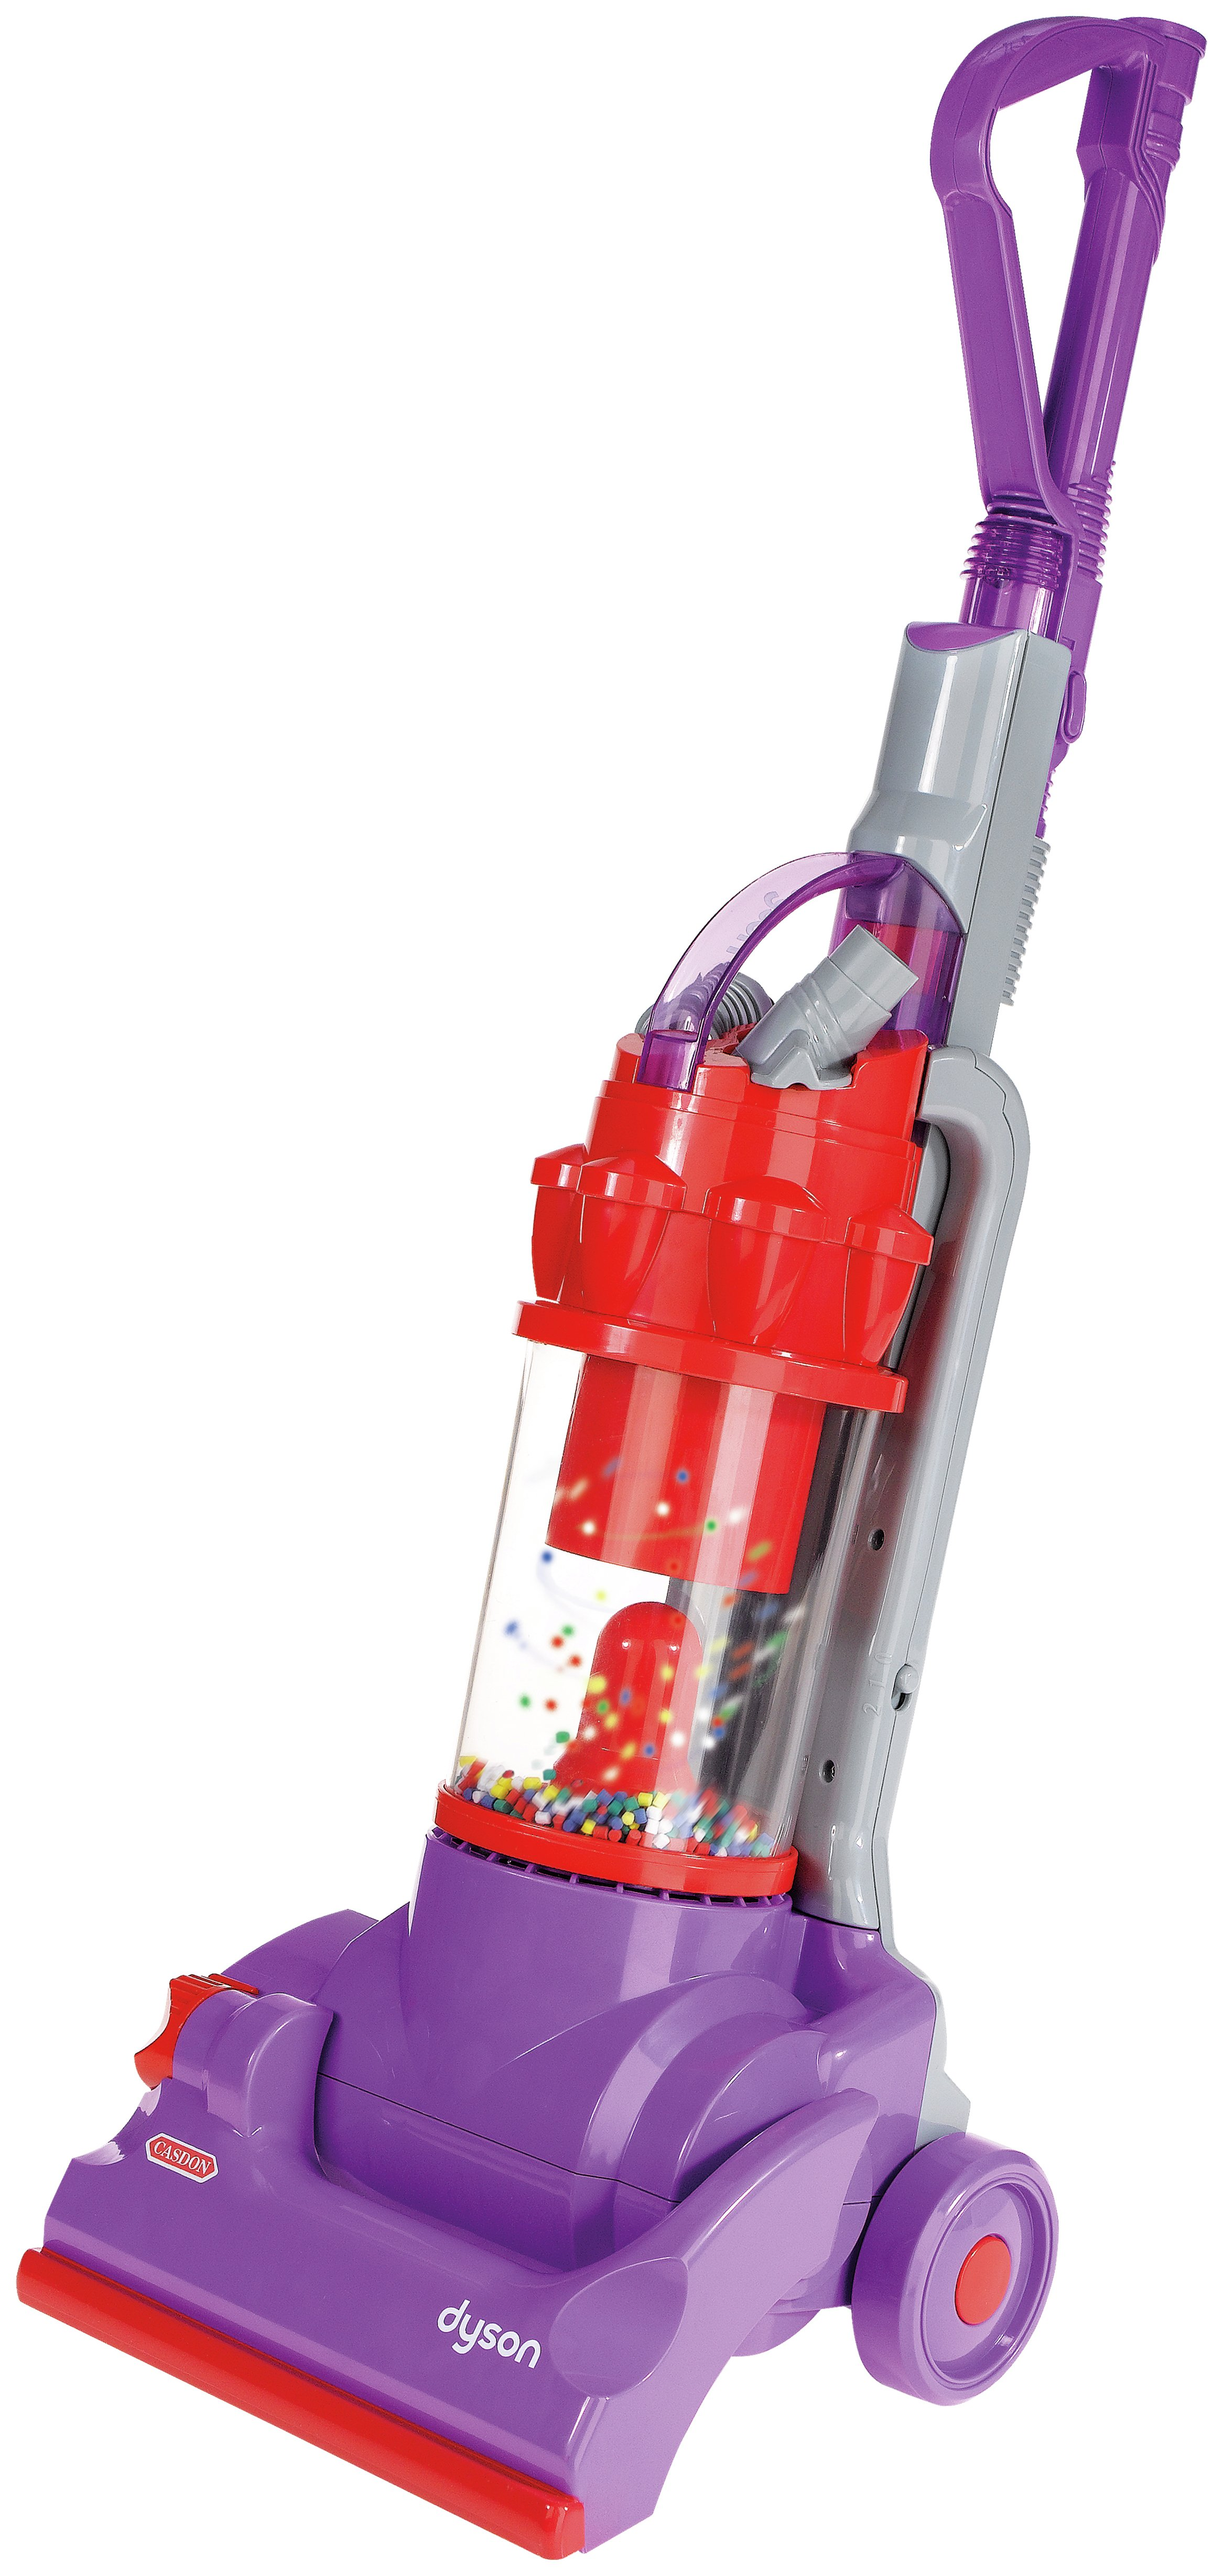 Image of Casdon Dyson Toy DC14 Vacuum Cleaner.